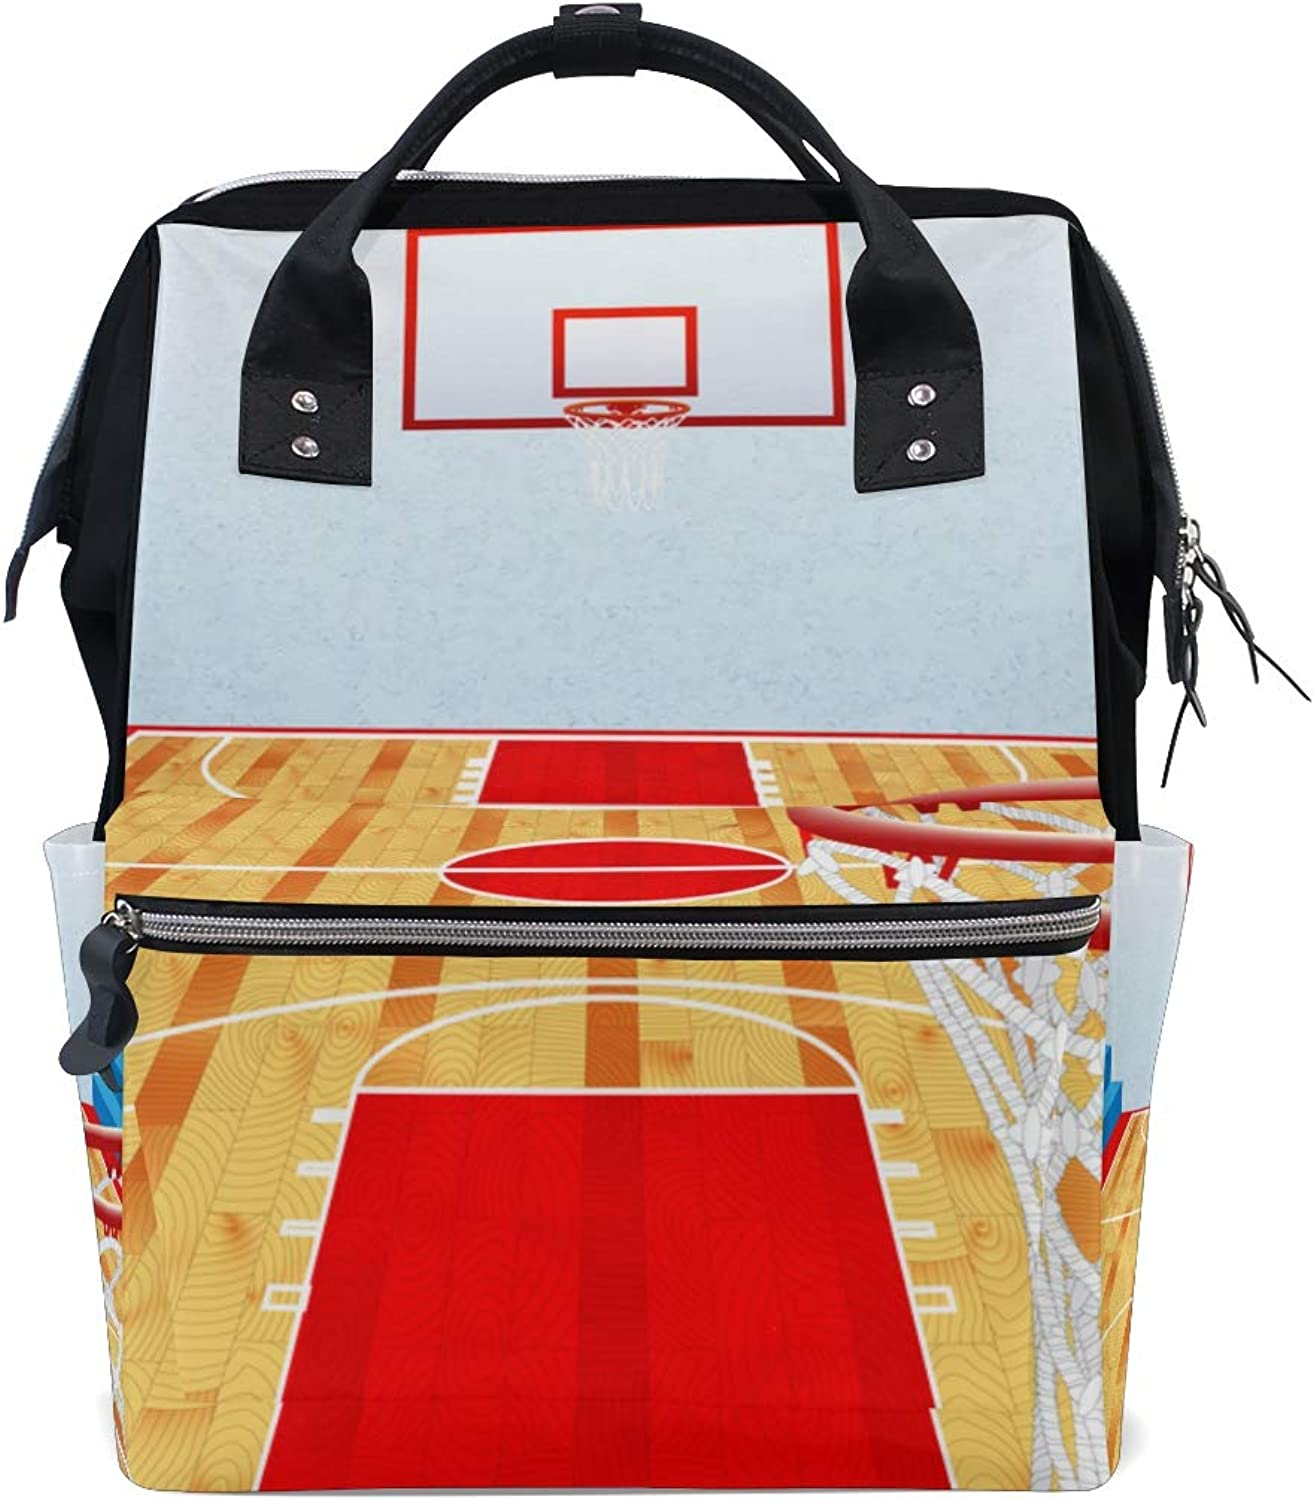 ColourLife Diaper bag Backpack Small Basketball Arena Casual Daypack Multifunctional Nappy Bags for Women Girls